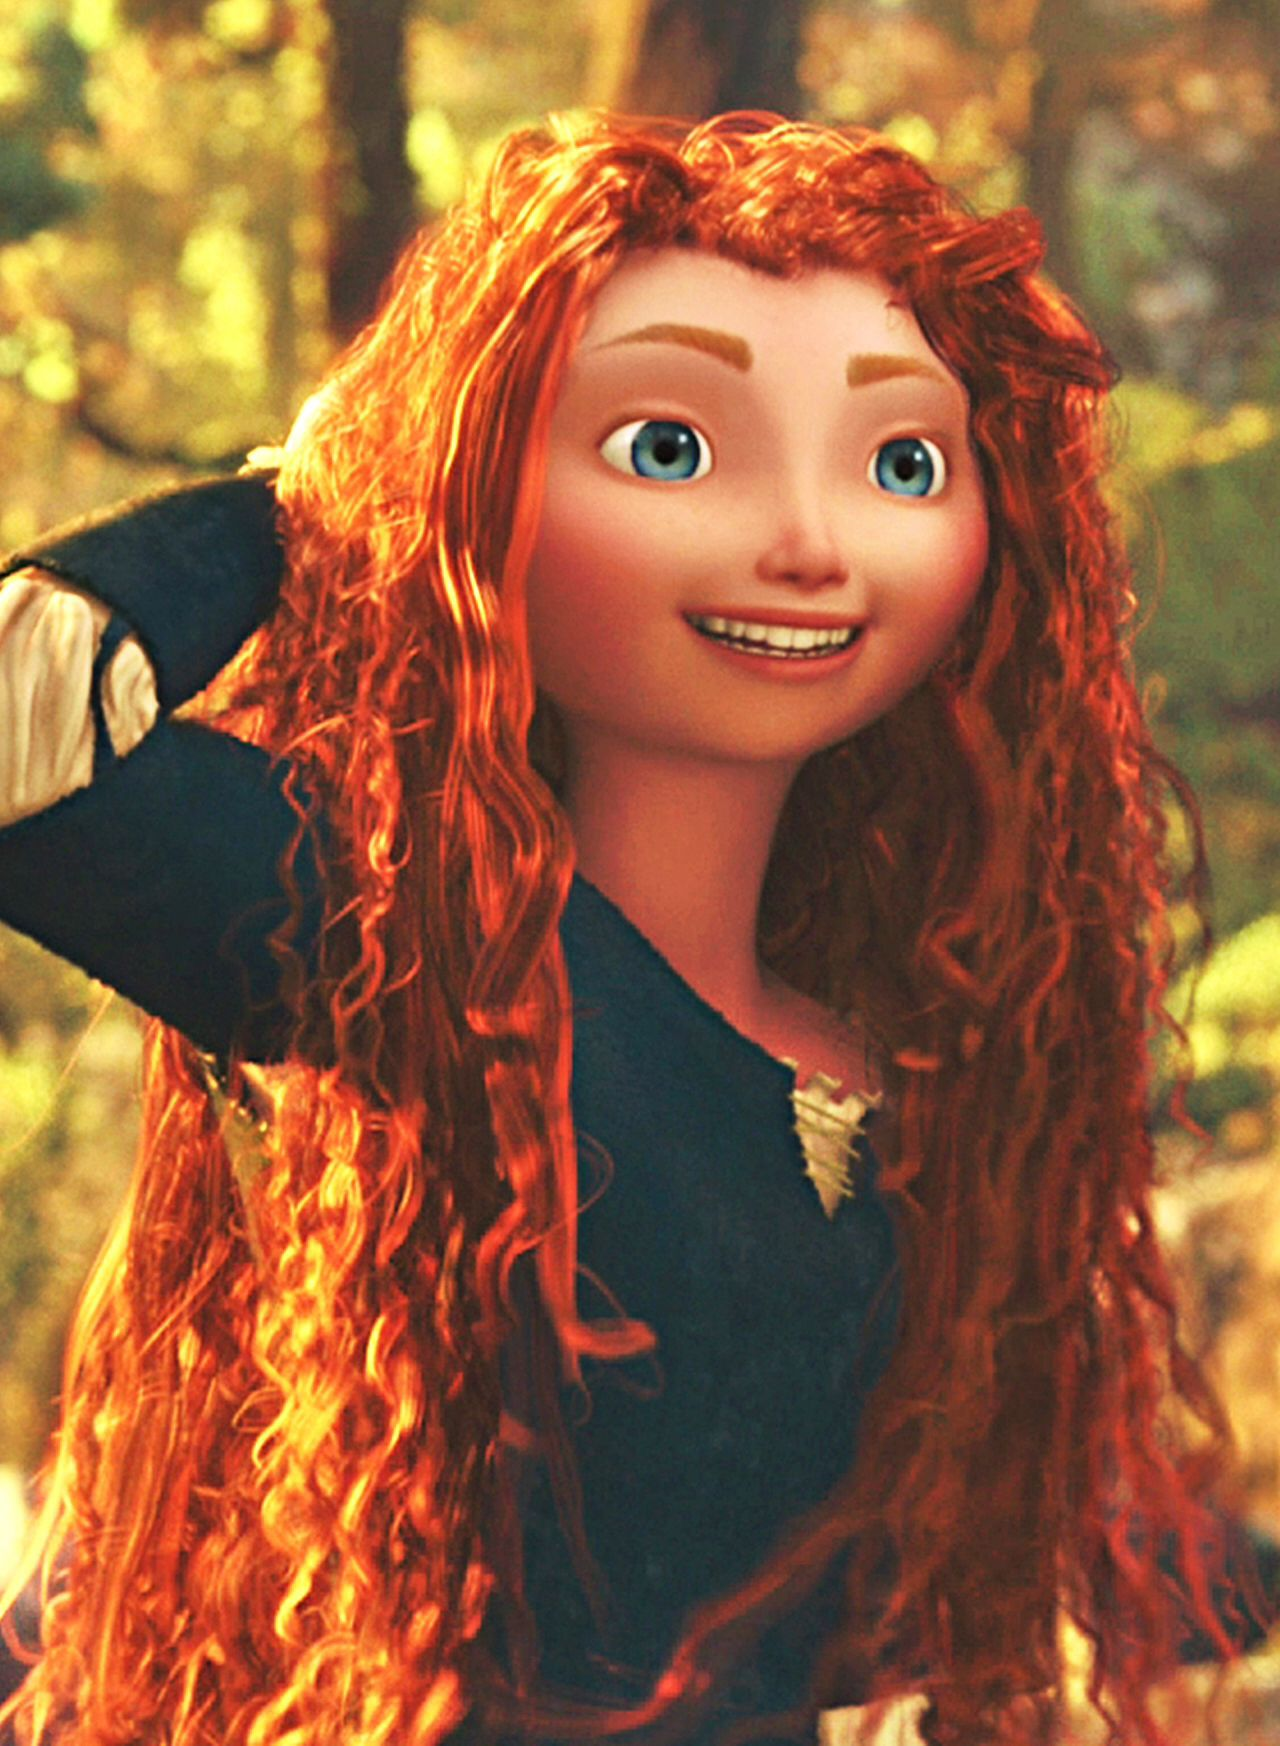 This is a photo of Irresistible Pictures of Merida From Brave